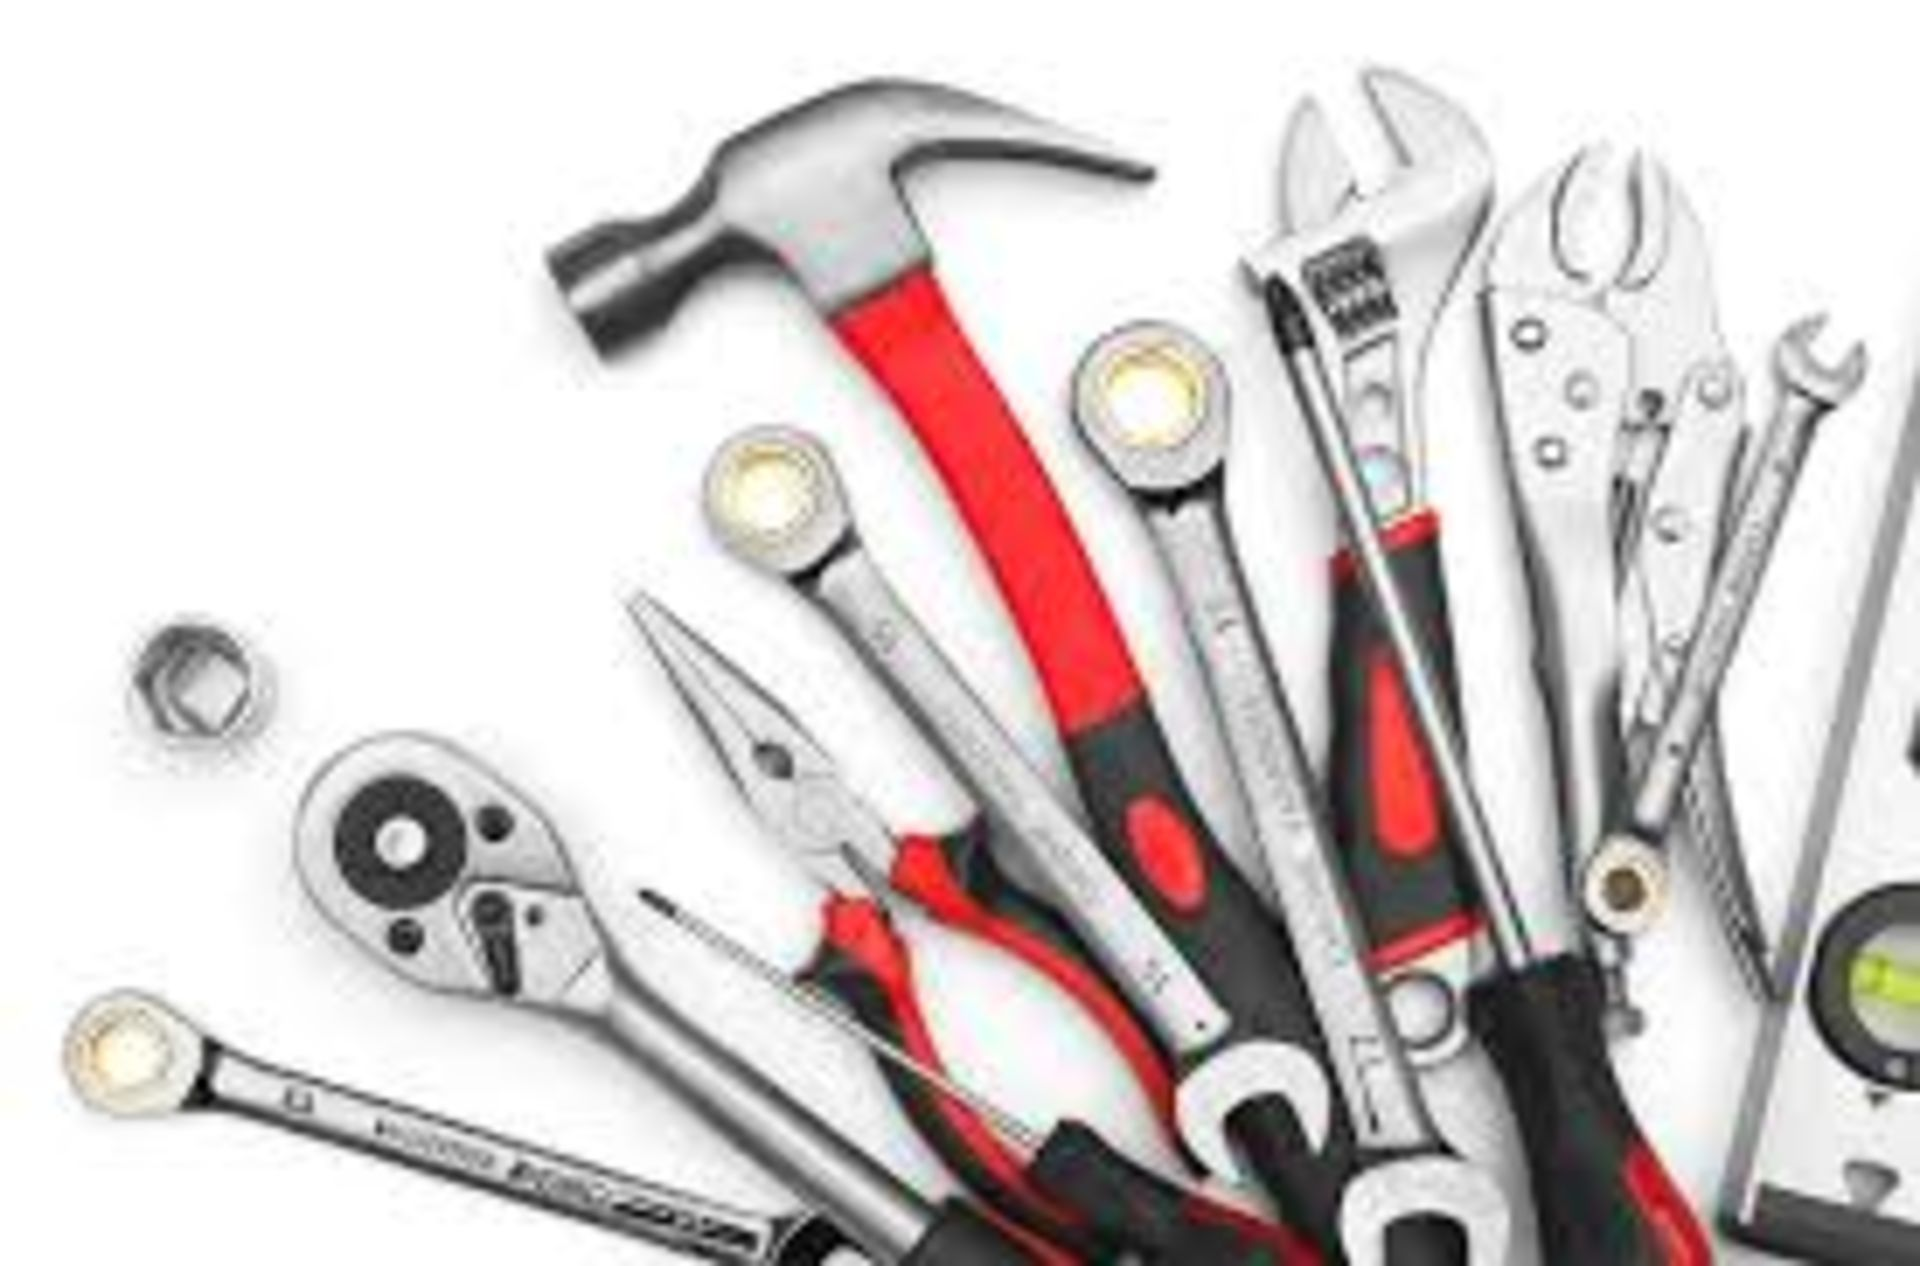 Lot 0G - You May Need Tools. Your Item May Require Tools and/or Help in Order To Pick Up Your Purchased